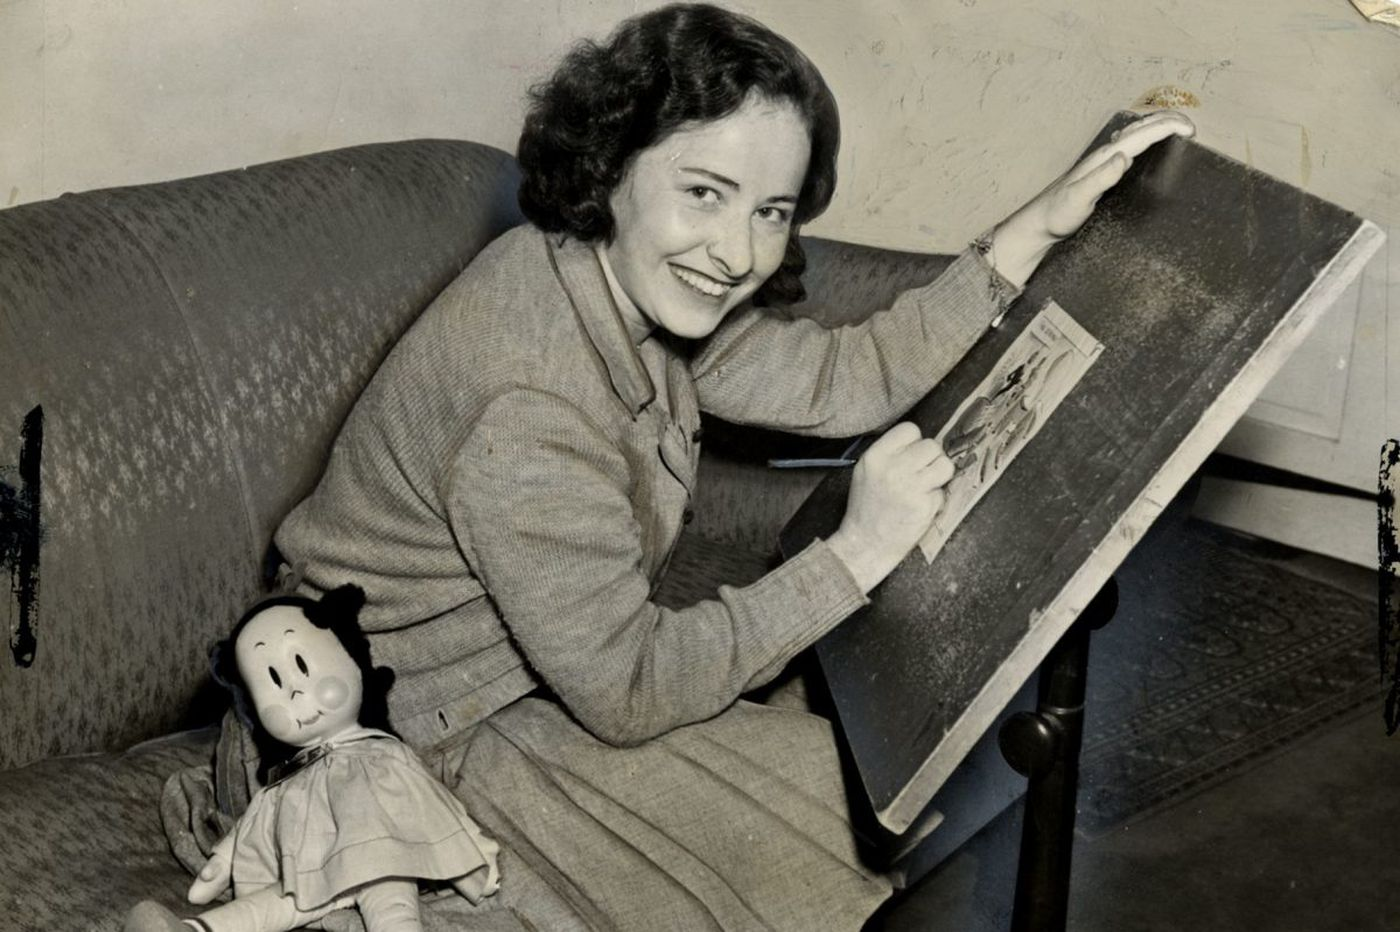 How Philly's 'Marge' Buell - and 'Little Lulu' - paved the way for female cartoonists